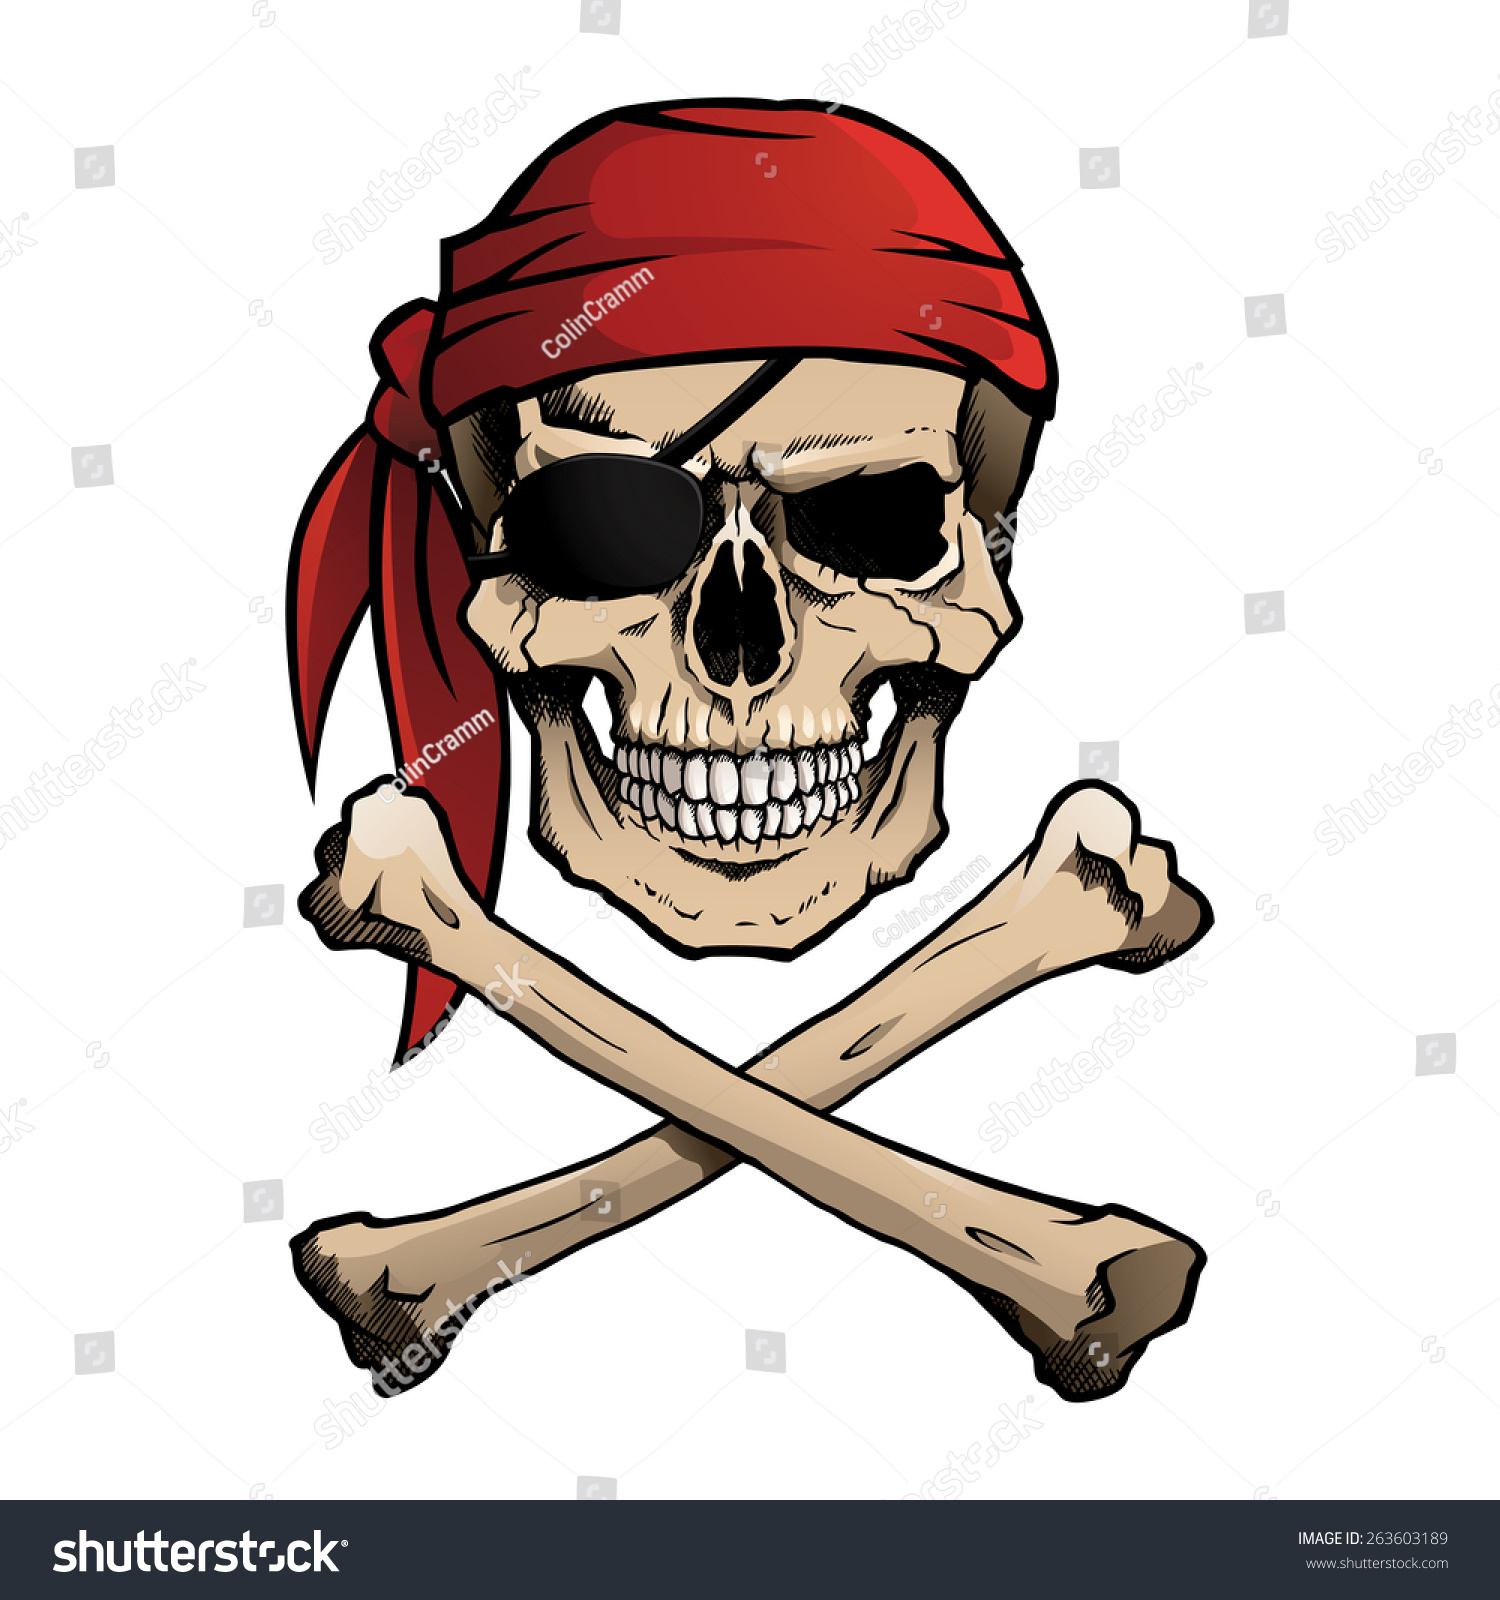 Image result for skull and crossbones with bandanas